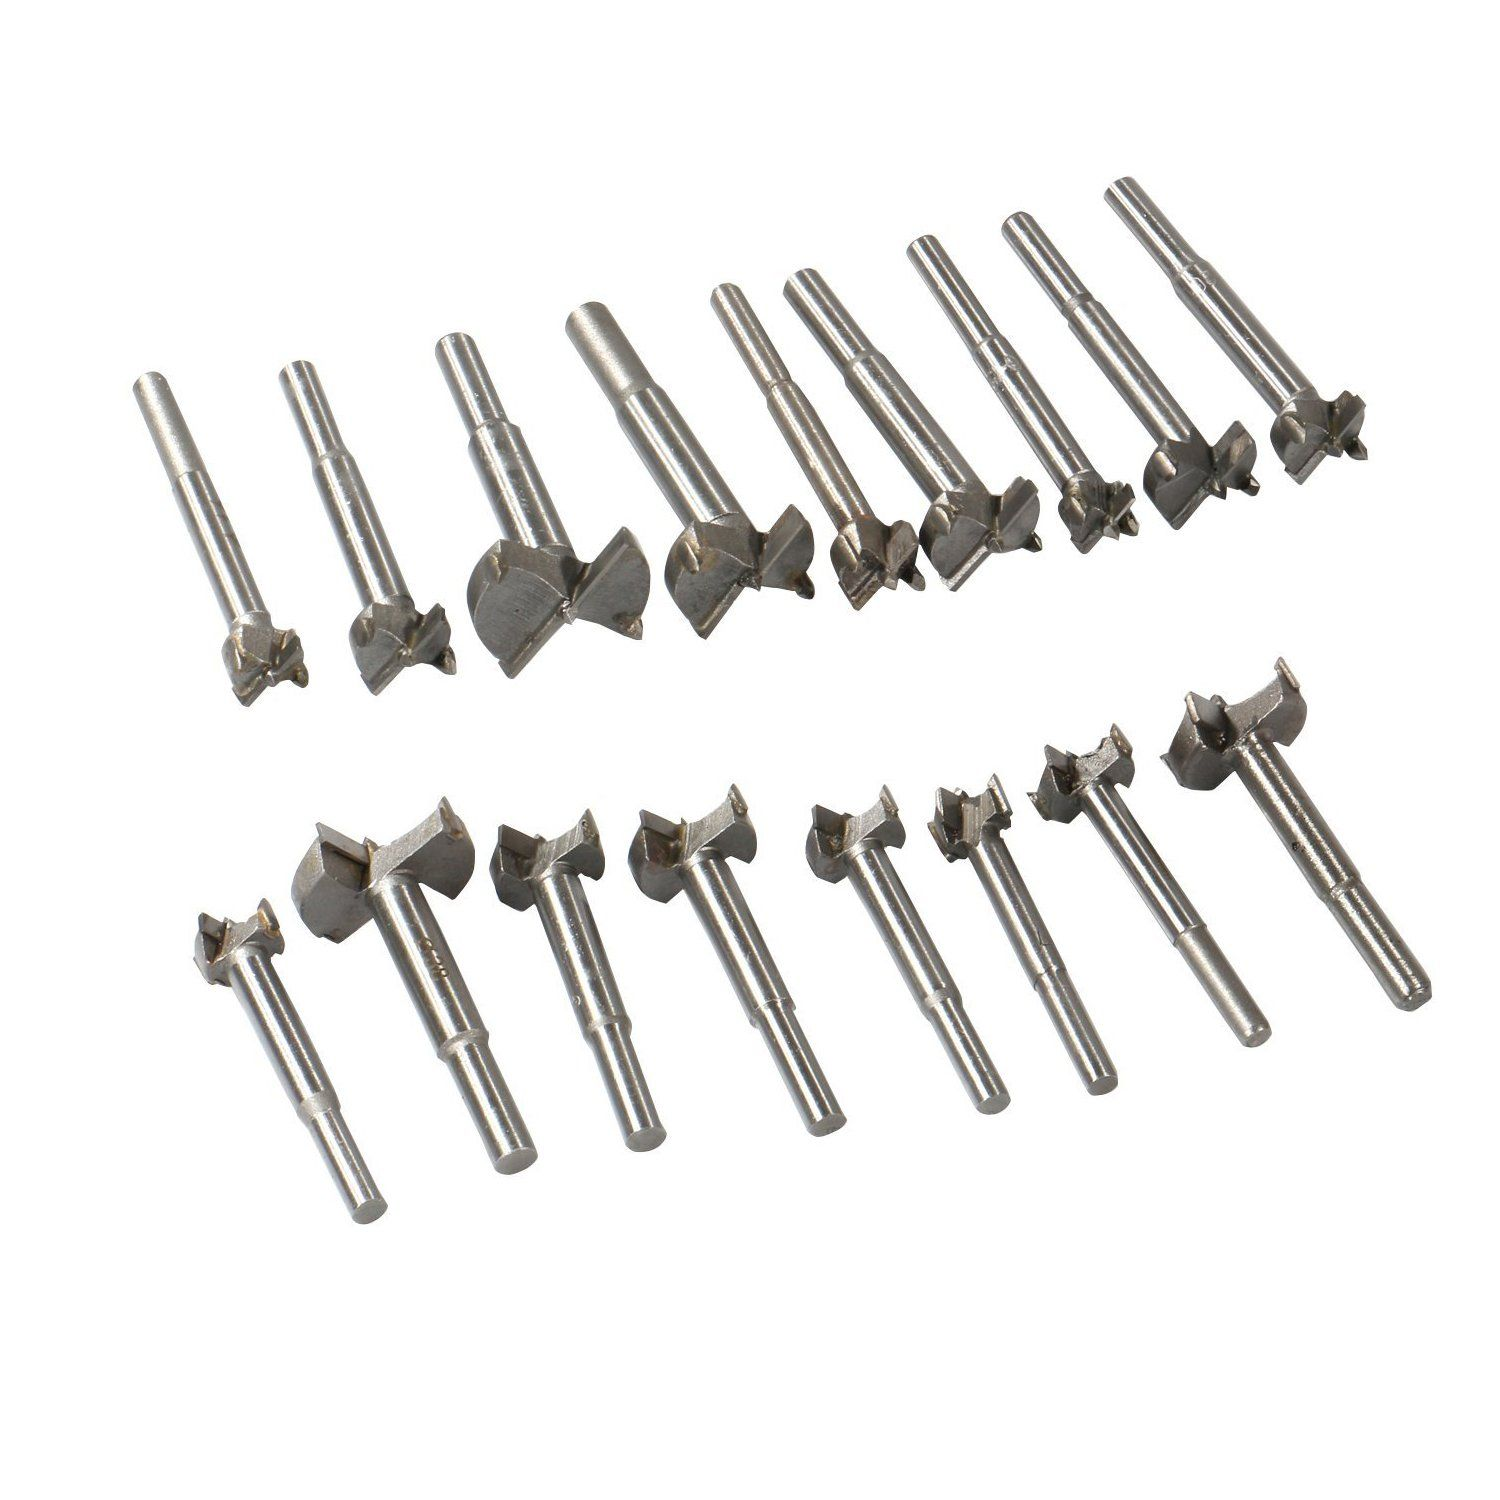 Forstner Drill Bit Sets17pcs 15mm38mm Tungsten Steel Woodworking Hole Saw Set Round Shank Wood Auger Opener Boring Drilling Tools Woodworking Tools Woodworking